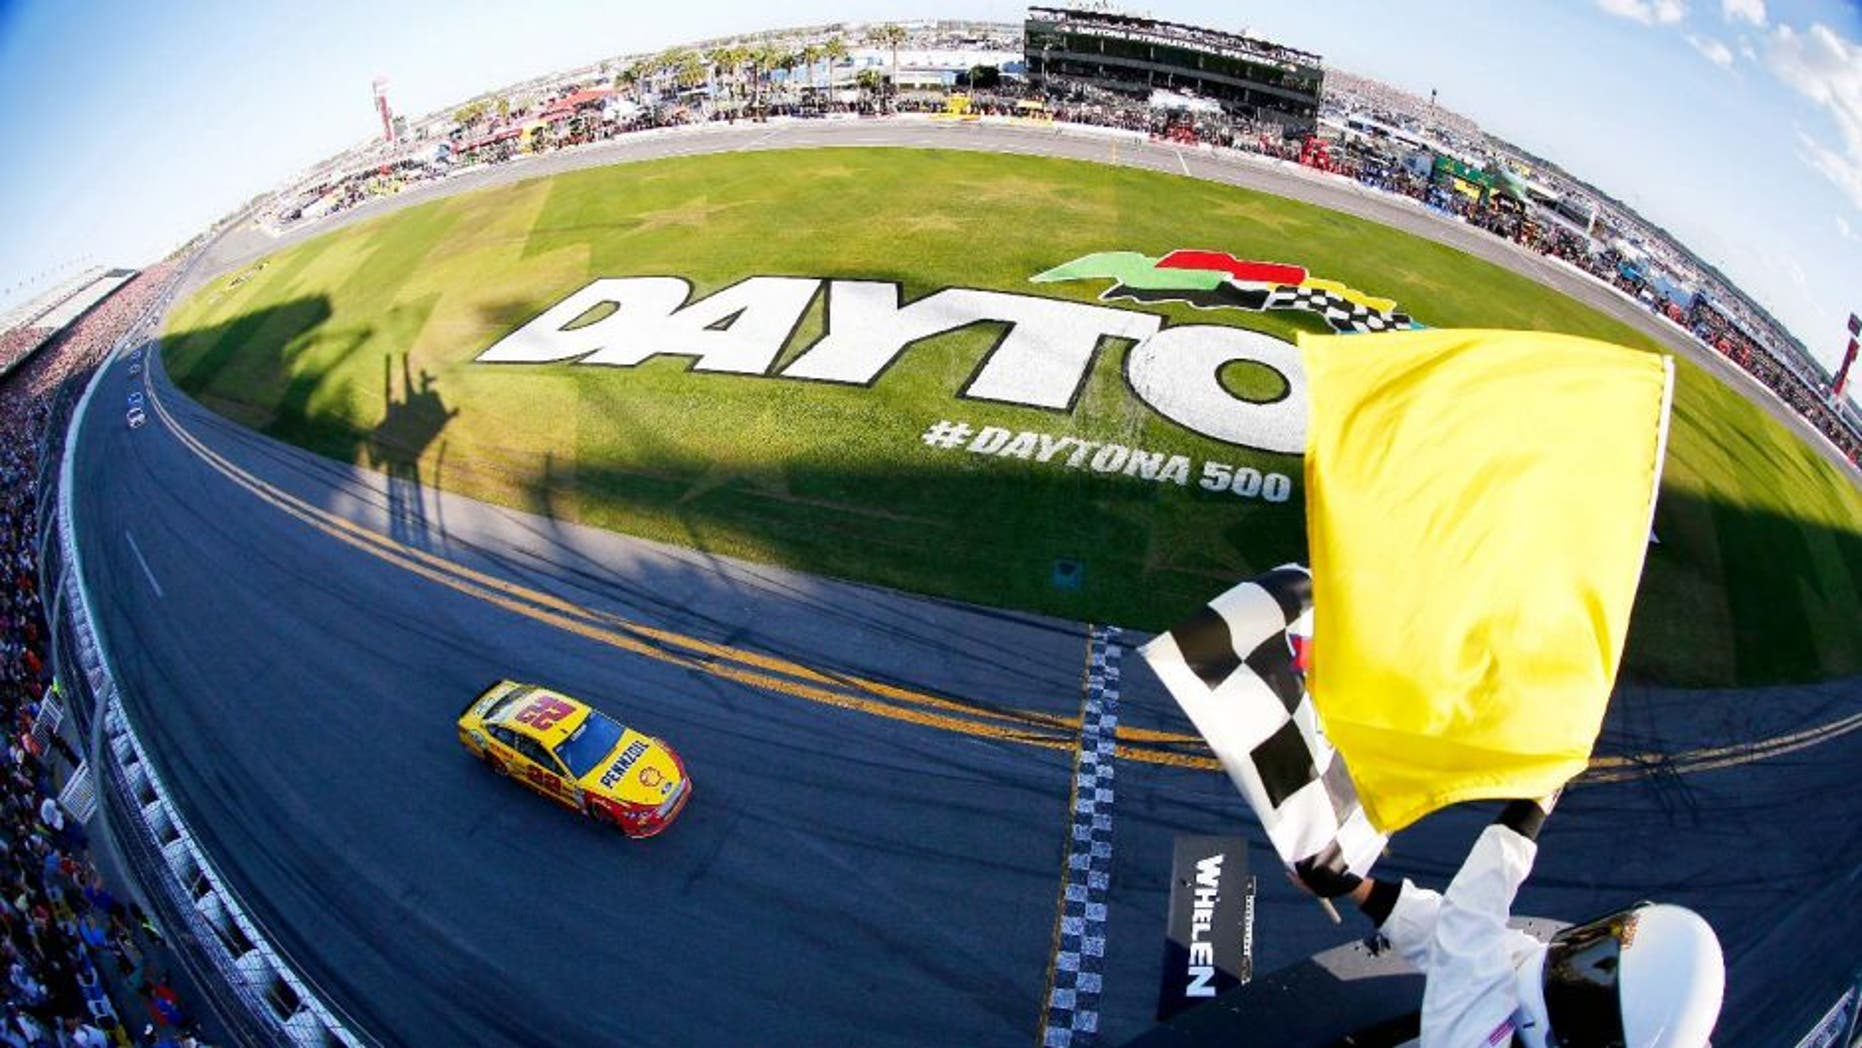 DAYTONA BEACH, FL - FEBRUARY 22: Joey Logano, driver of the #22 Shell Pennzoil Ford, takes the checkered flag to win the NASCAR Sprint Cup Series 57th Annual Daytona 500 at Daytona International Speedway on February 22, 2015 in Daytona Beach, Florida. (Photo by Jonathan Ferrey/NASCAR via Getty Images)